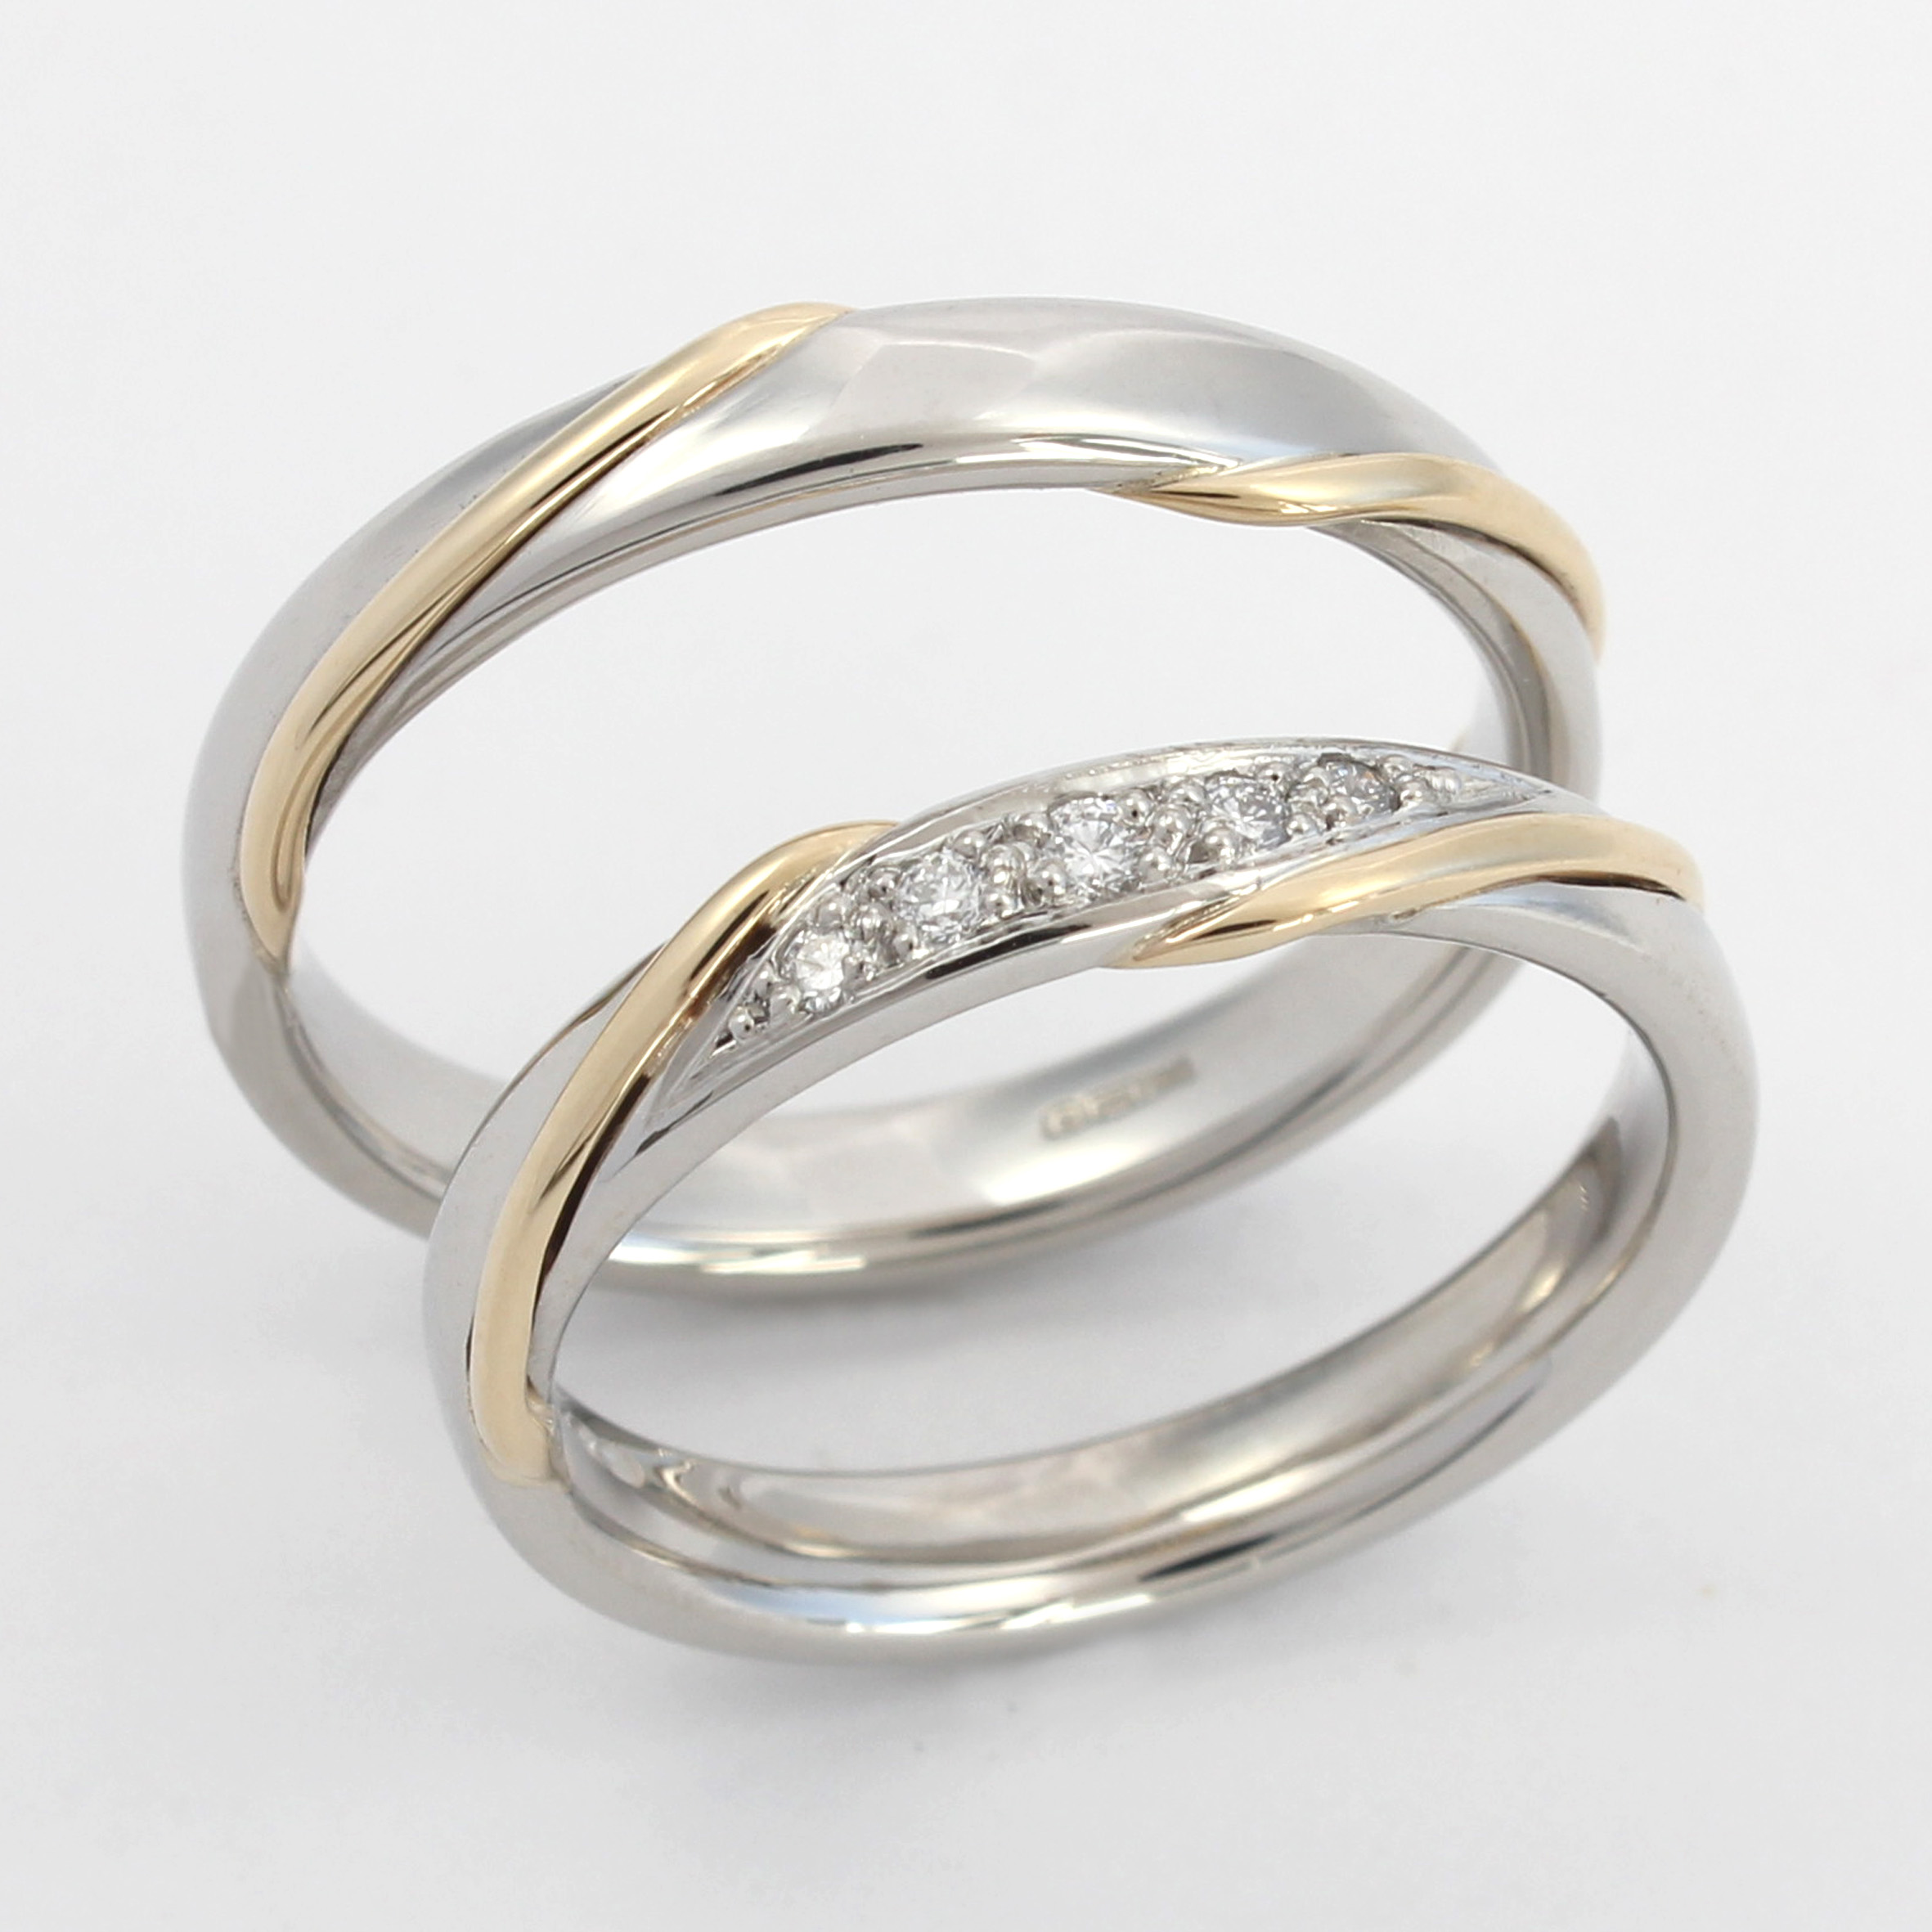 Platinum wedding ring with yellow gold twist design